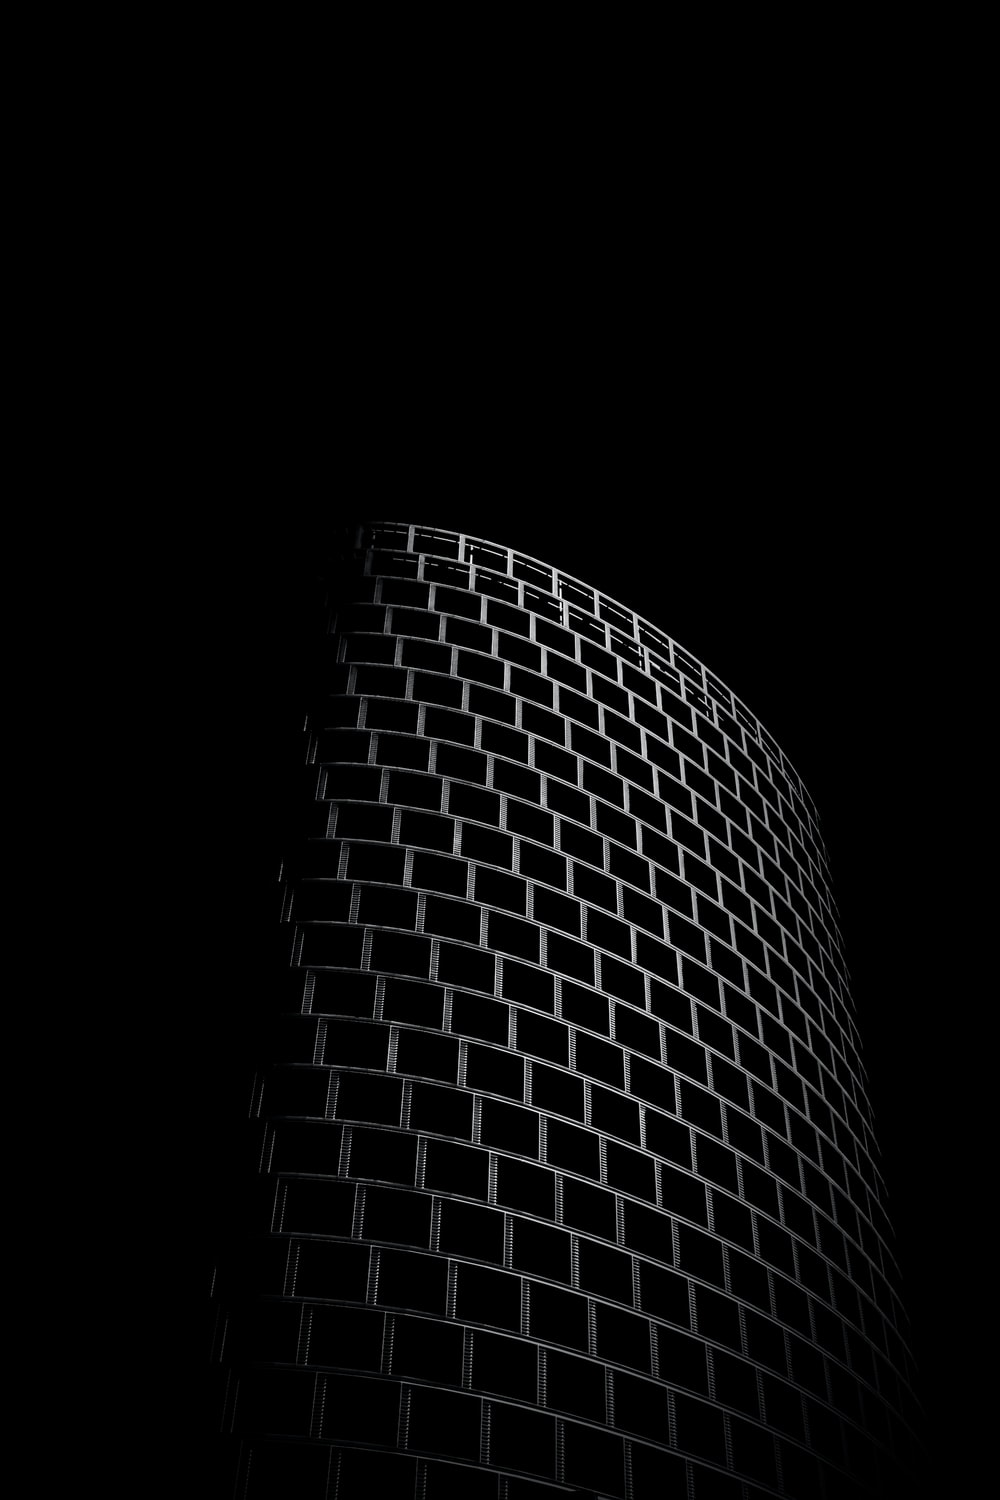 Black Amoled Wallpaper Hd 3d Android Wallpaper